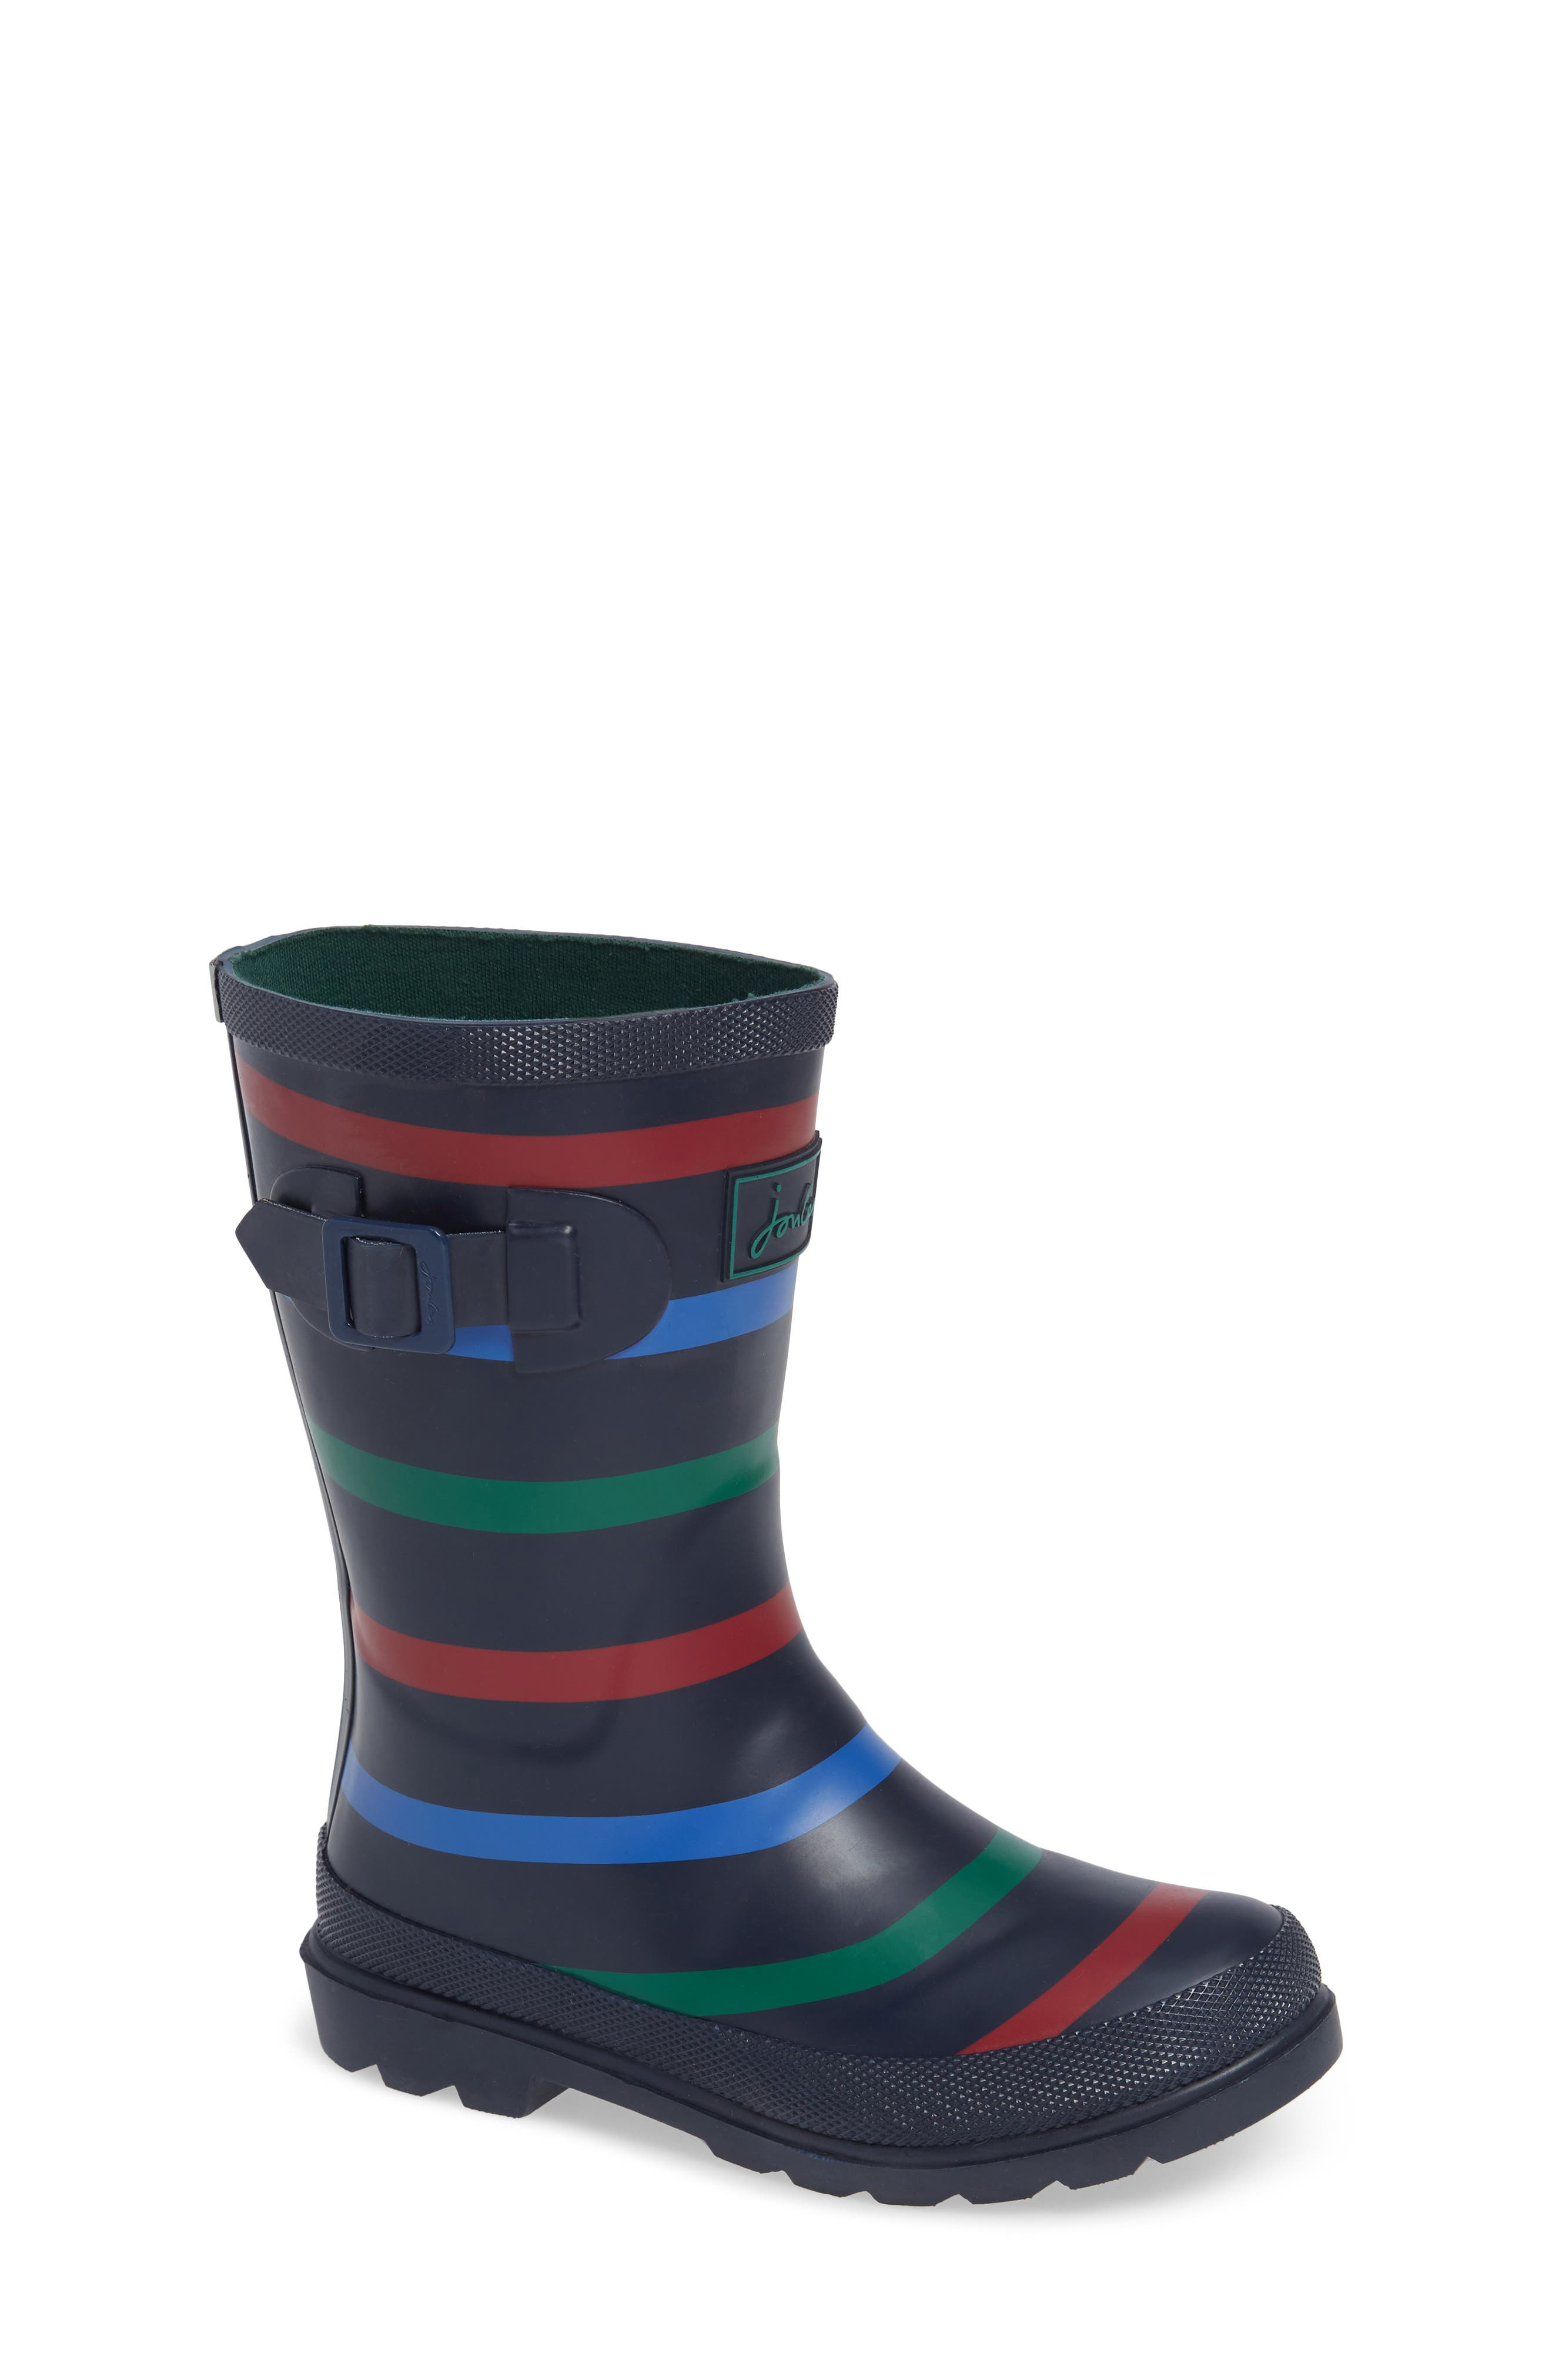 Joules Welly Print Waterproof Rain Boot